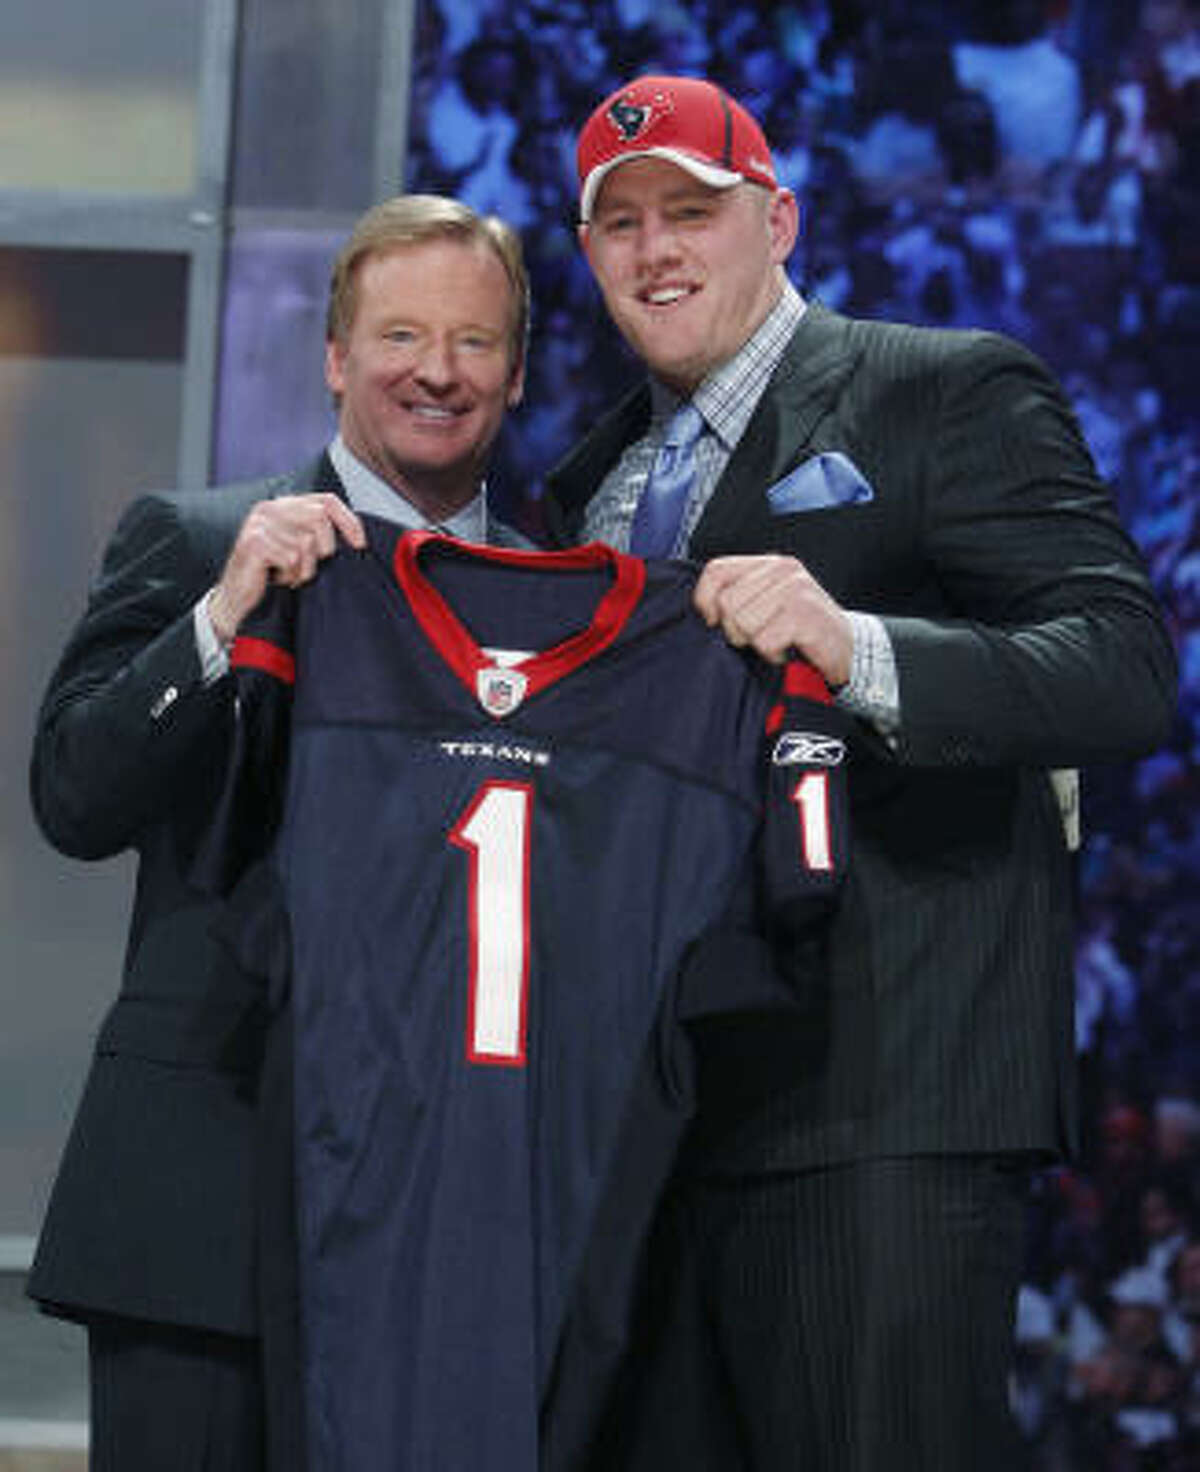 Photos: Ranking every draft class in Houston Texans franchise history The Texans hit it big when they drafted J.J. Watt at No. 11 in the 2011 NFL Draft. As it turns out, that wasn't even their most successful draft. Browse through the photos to see how we rank every Texans draft class.